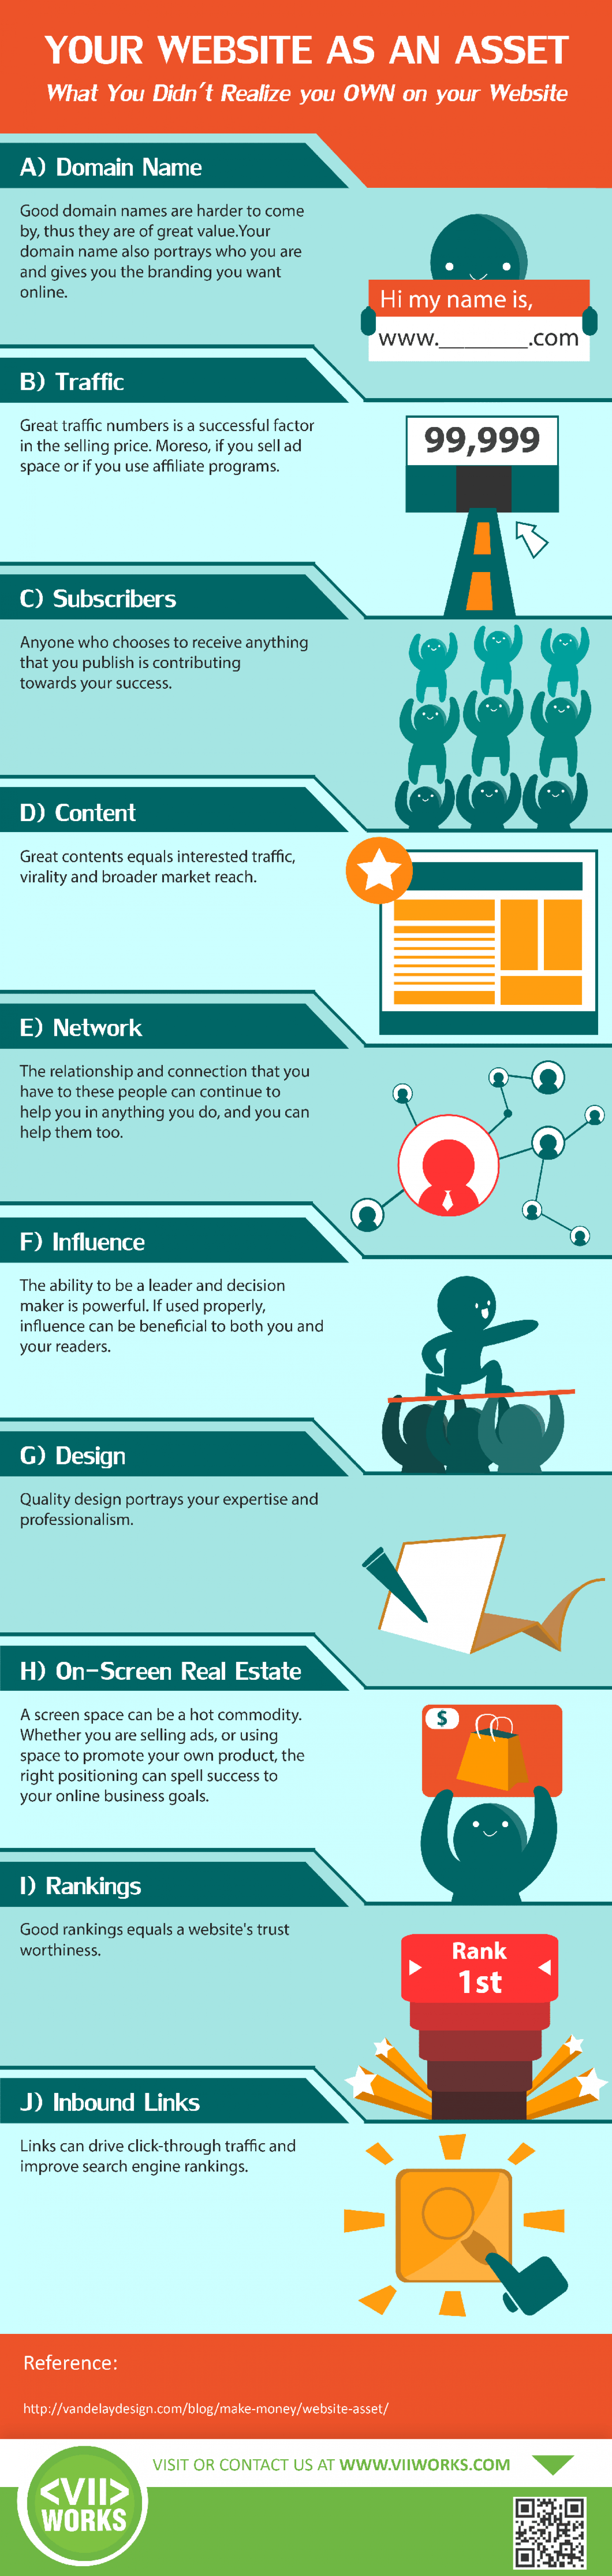 Your Website As An Asset Infographic